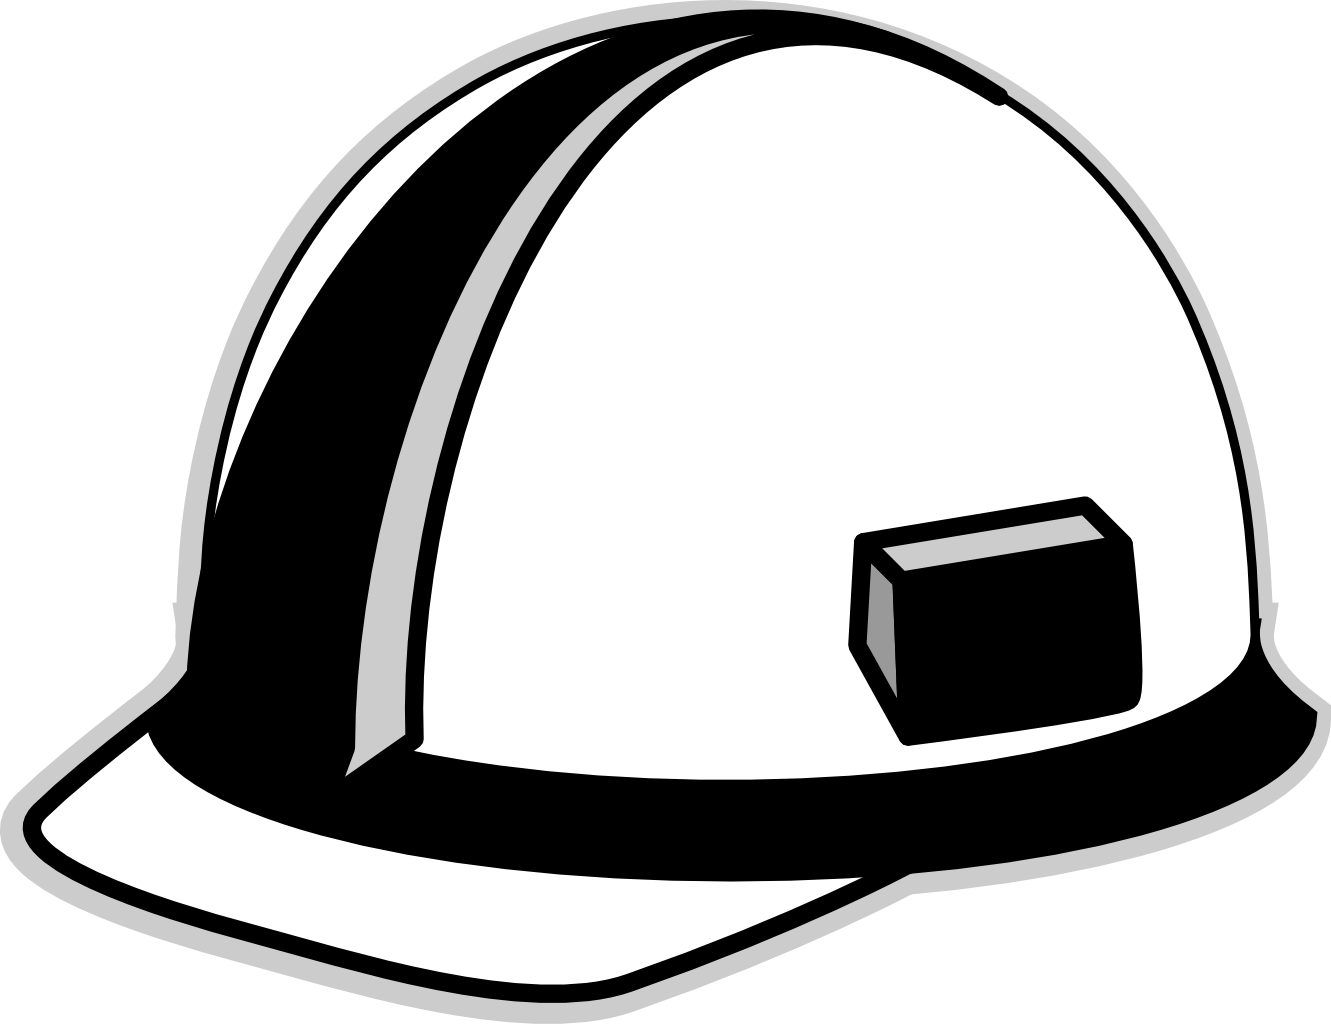 Hard Hat Black White Line Art Scalable V-Hard Hat Black White Line Art Scalable Vector Graphics SVG-9